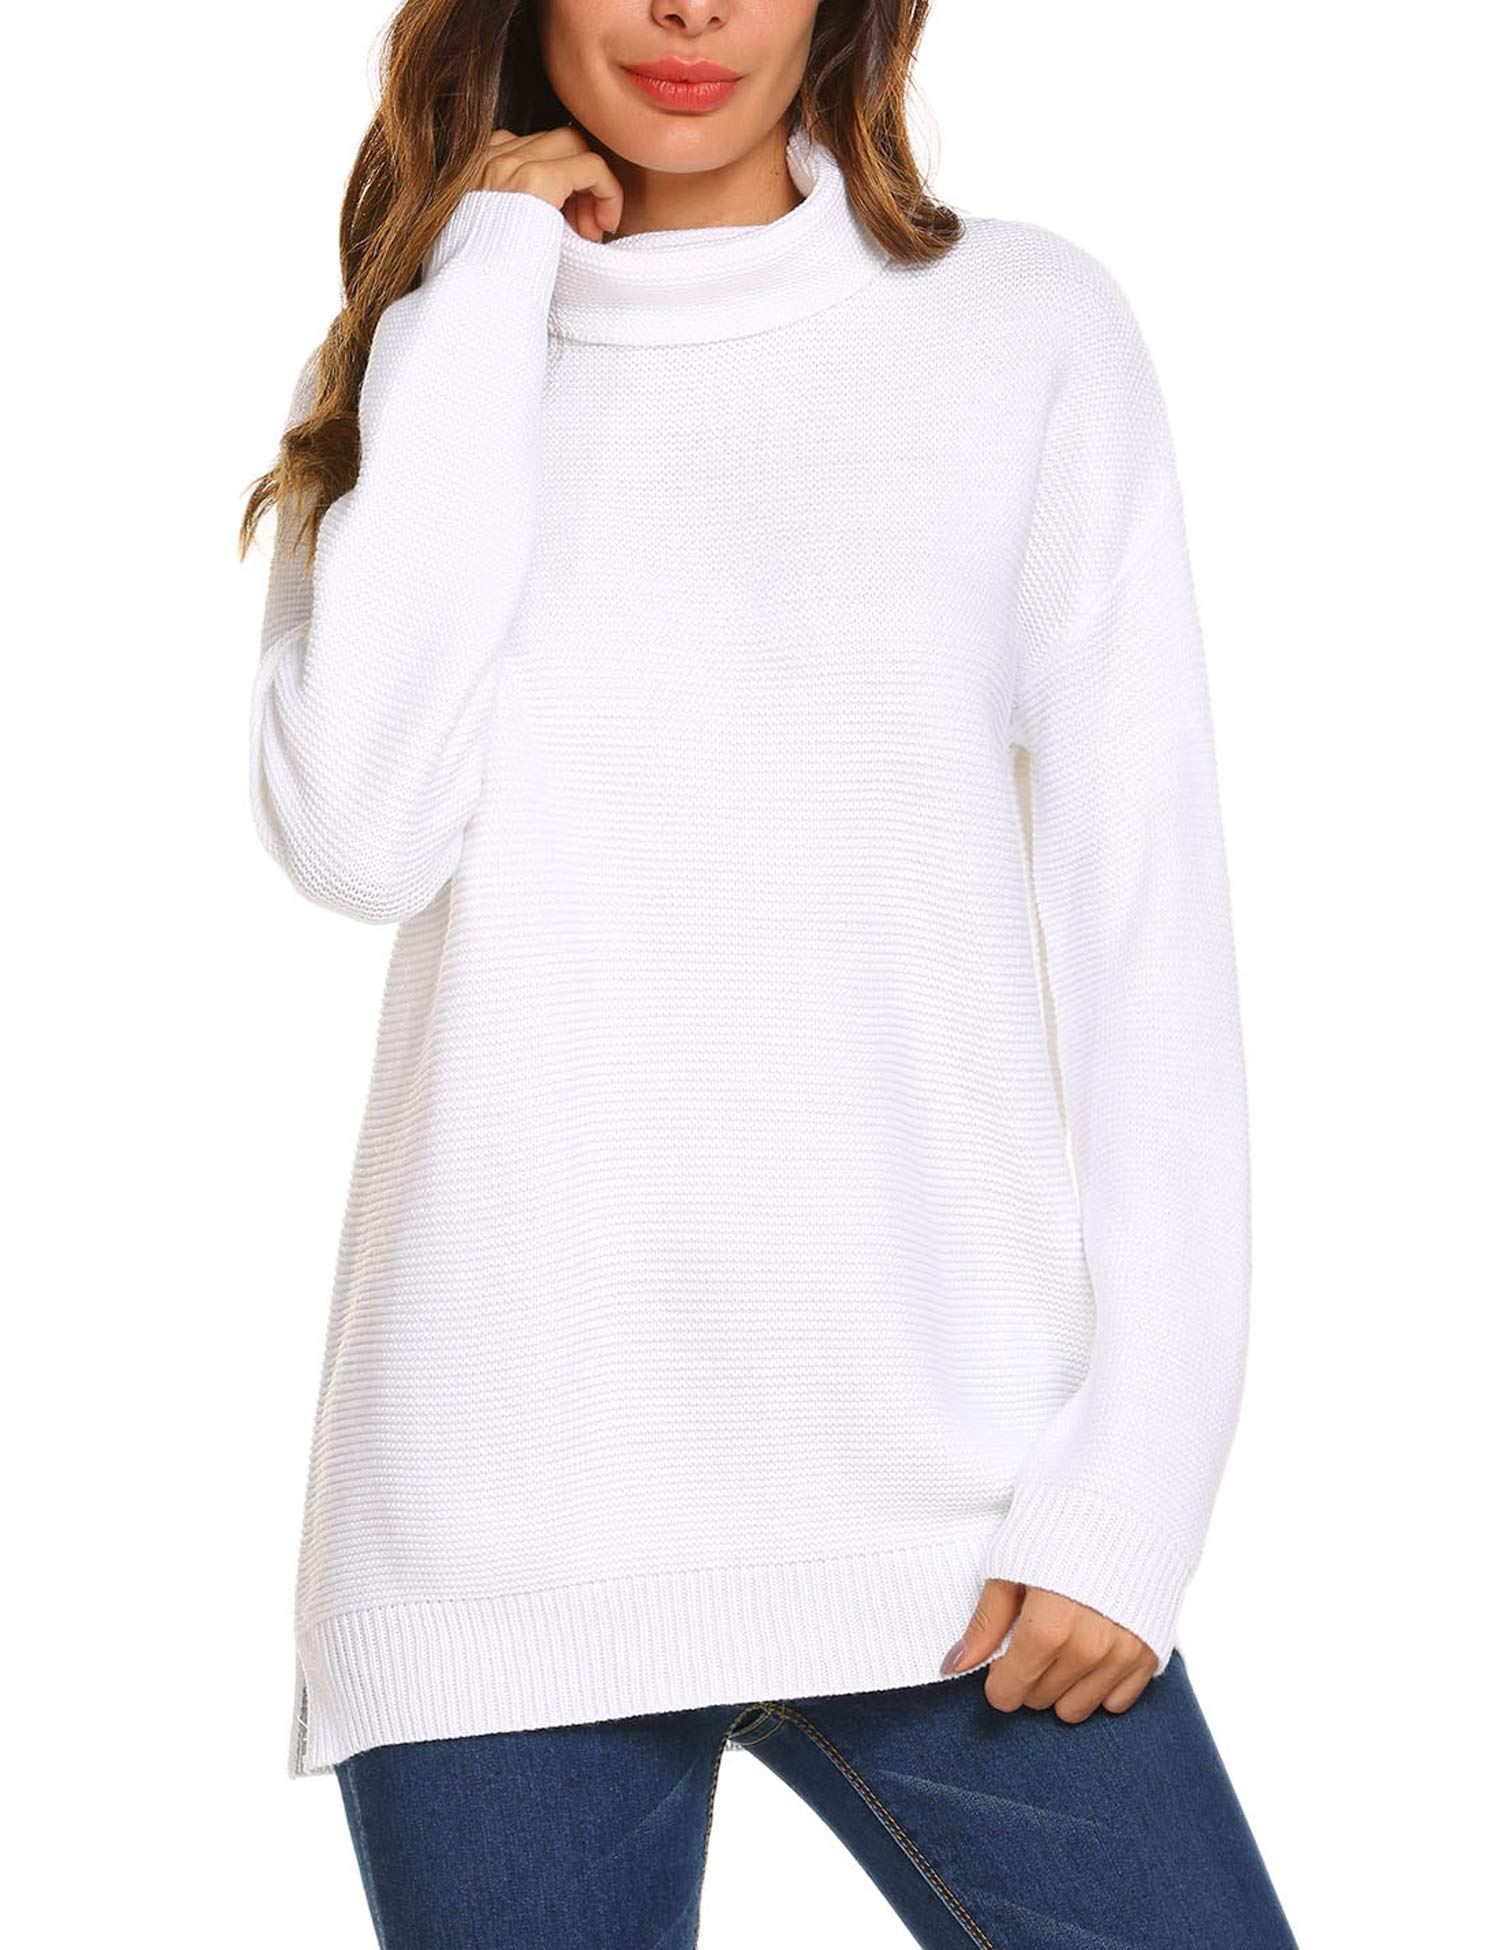 Teewanna Women Cowl Neck Knit Stretchable Long Sleeve Loose Sweater Jumper (White, S)